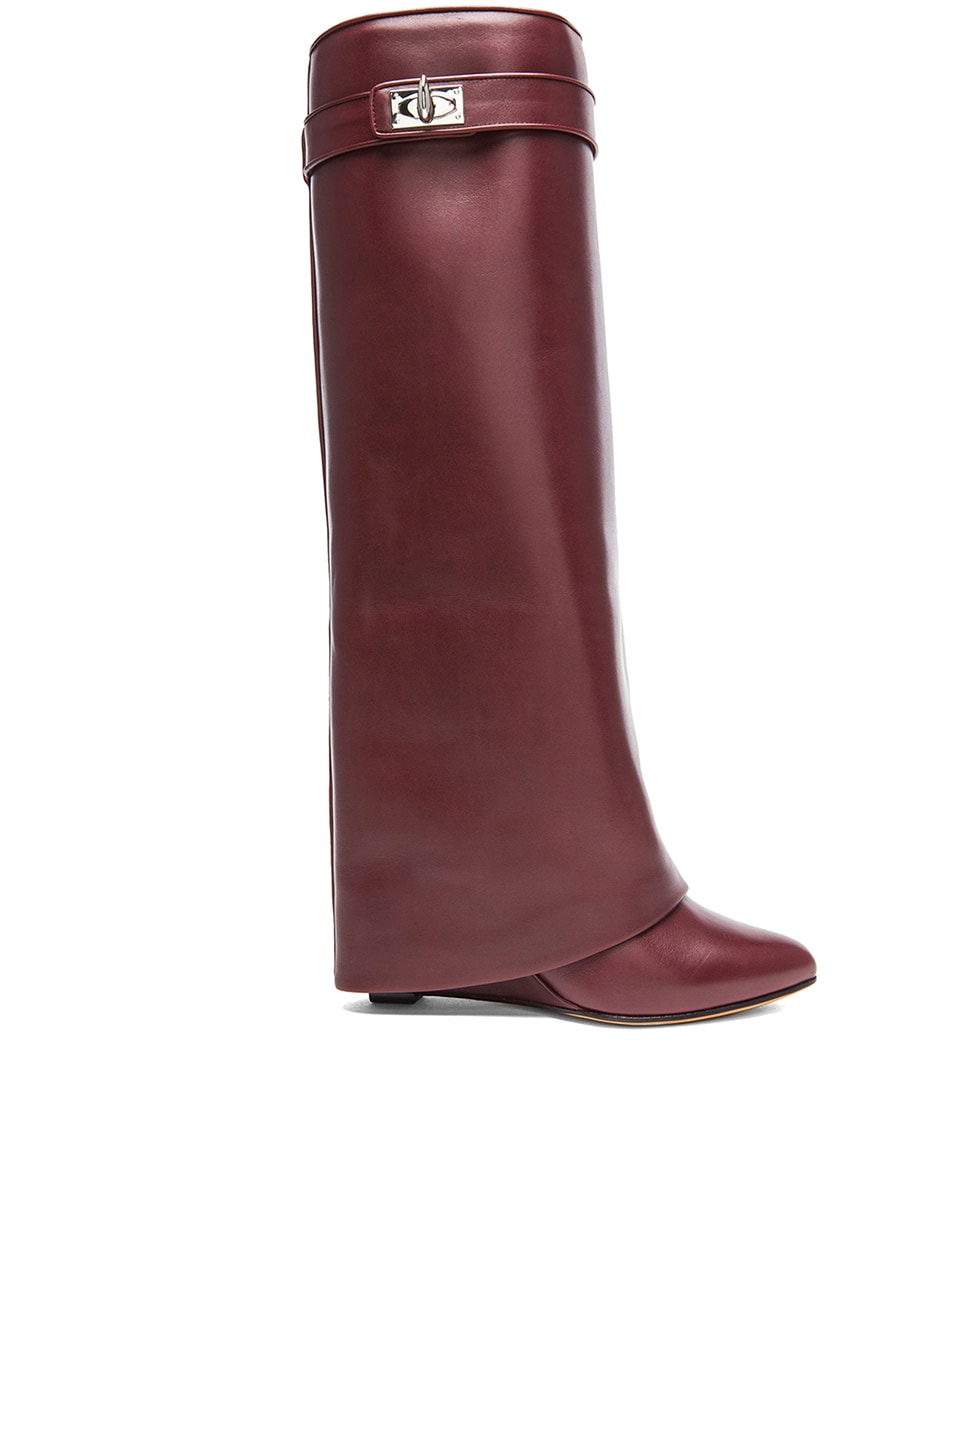 Image 1 of GIVENCHY Shark Lock Tall Leather Pant Boots in Burgundy